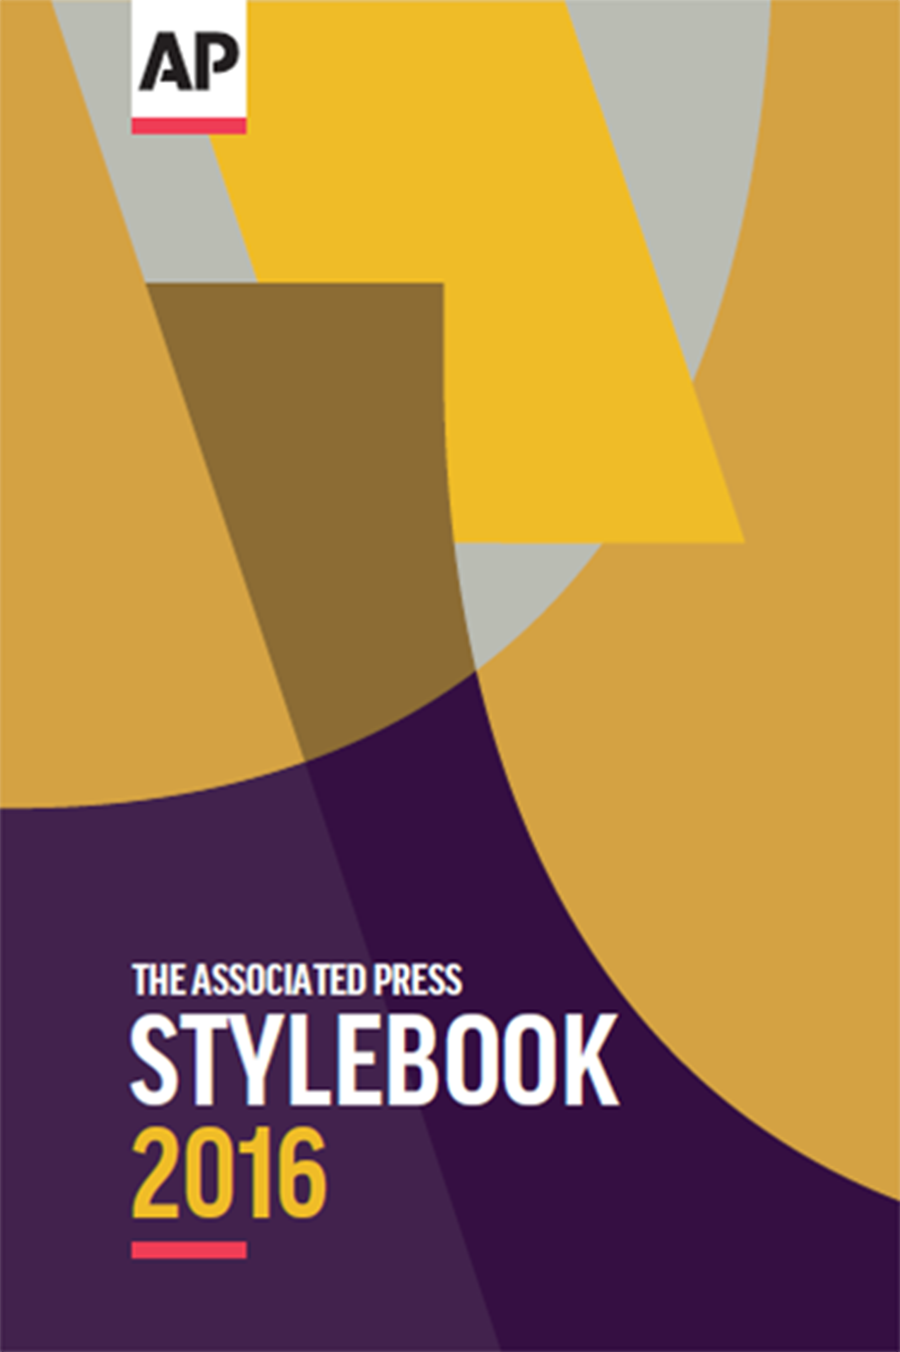 The 2016 AP Styleguide